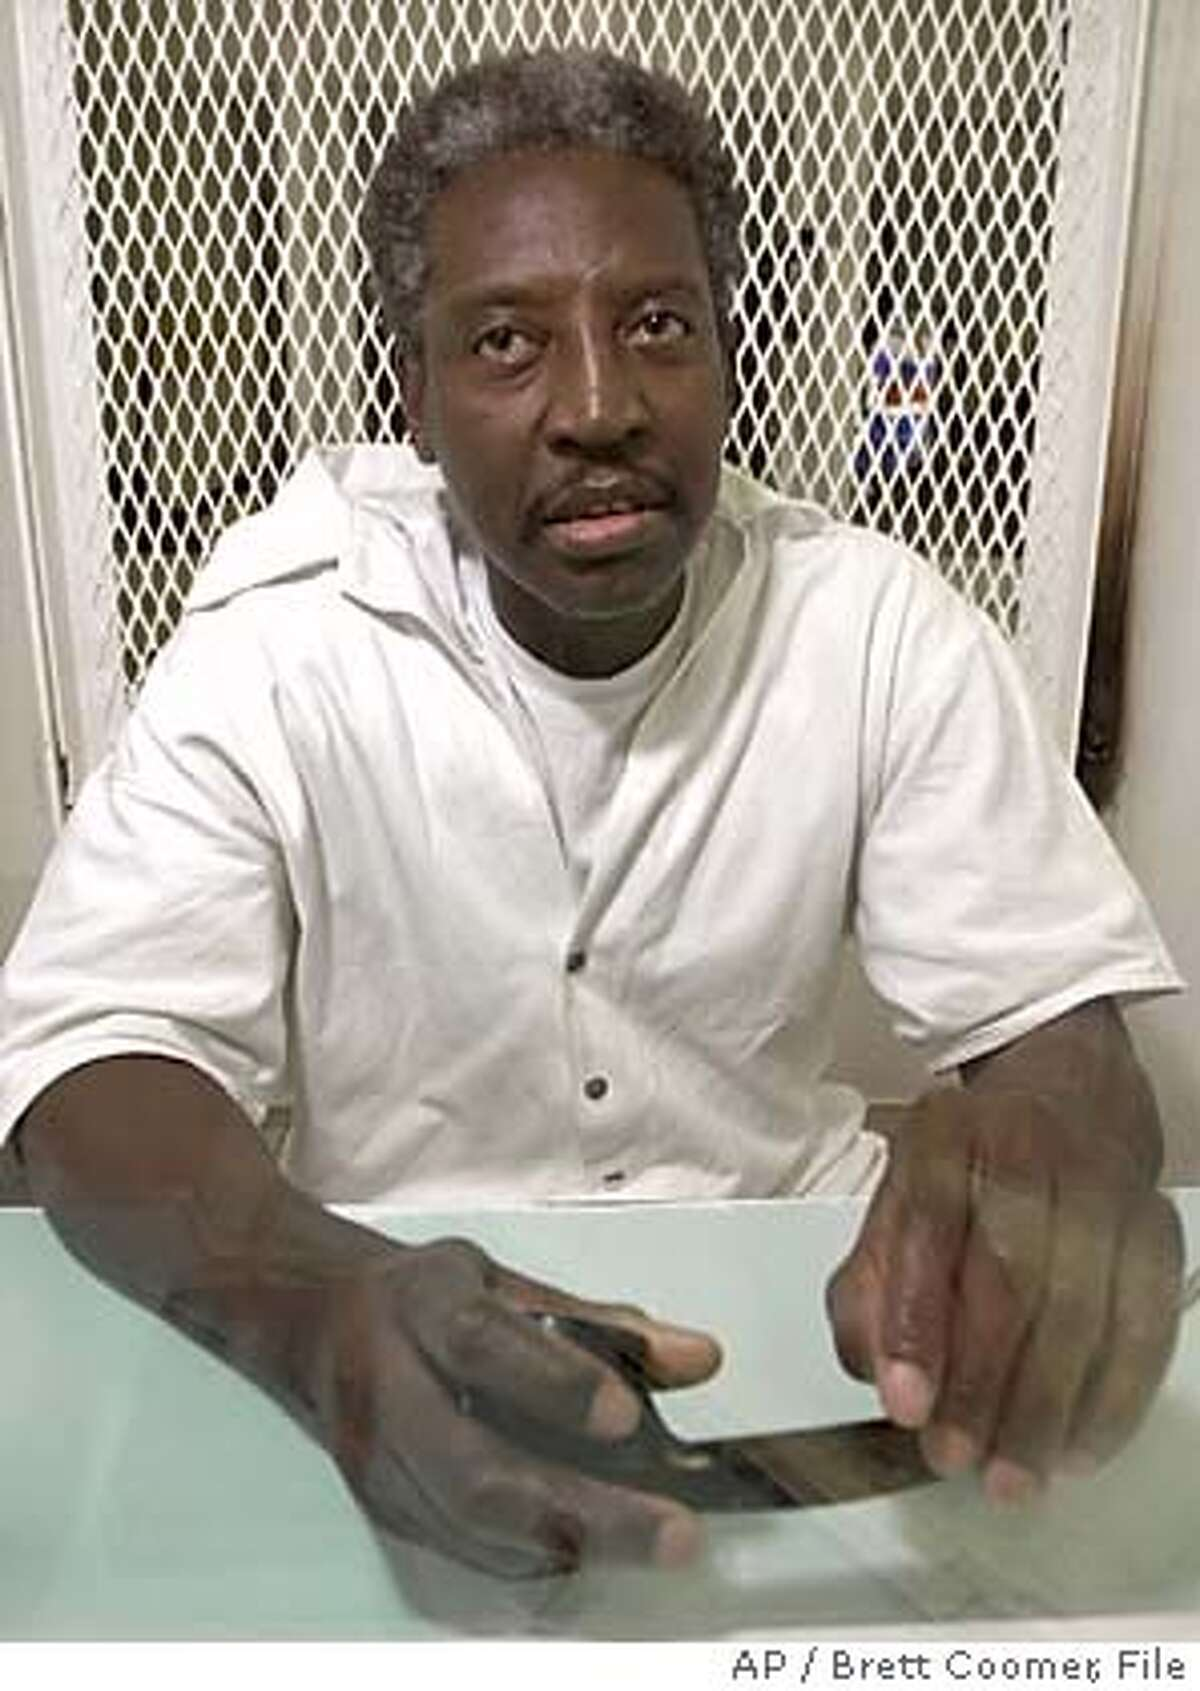 **FILE** Death row inmate Thomas Miller-El, sits in a visitation cell at the Texas Department of Criminal Justice's the Polunsky Unit in Livingston, Texas, in a Wednesday, Feb. 20, 2002 photo. The Supreme Court overturned the conviction of Miller-El Monday, June 13, 2005, ordering a new trial for Miller-El and issuing a harsh rebuke to the state that executes more people than any other. (AP Photo/Brett Coomer, File) A WEDNESDAY, FEB. 20, 2002 FILE PHOTO.